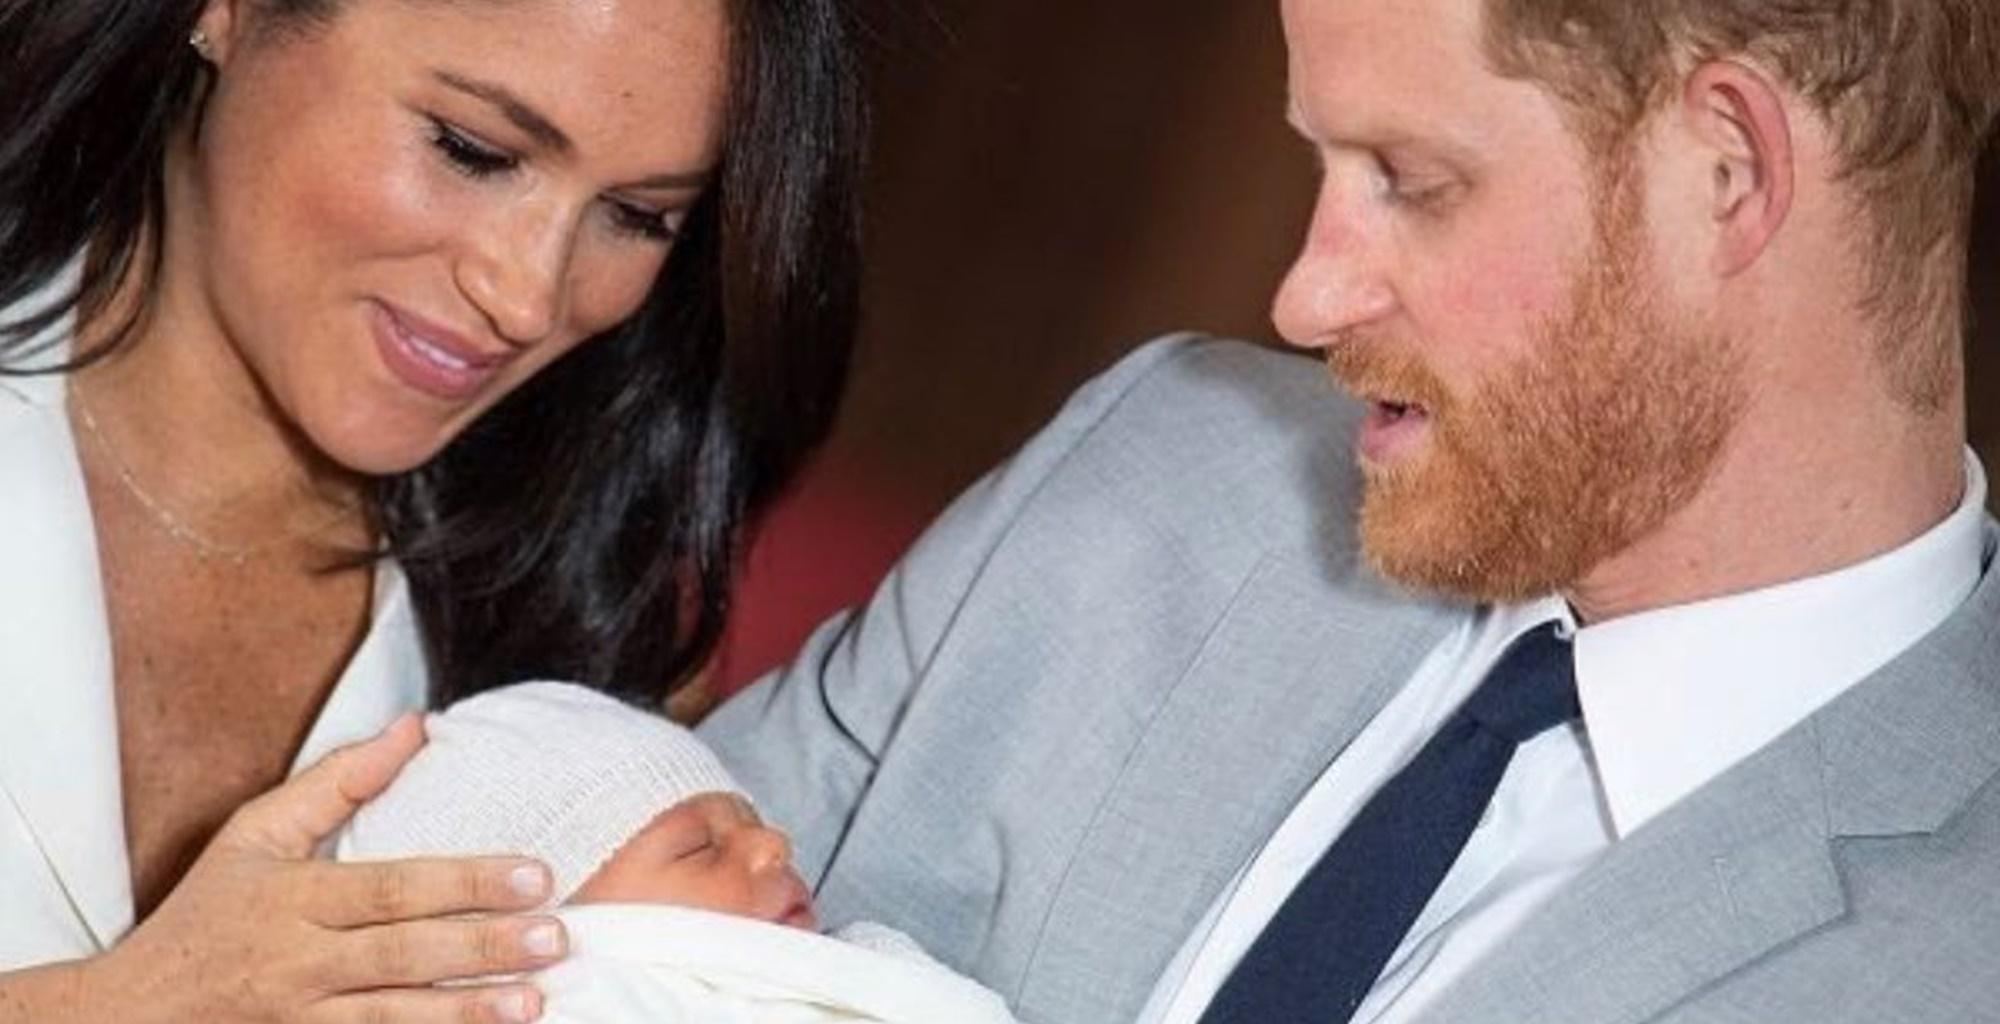 Prince William And Kate Middleton Finally Meet Baby Archie As Harry Wins Something 'Substantial'